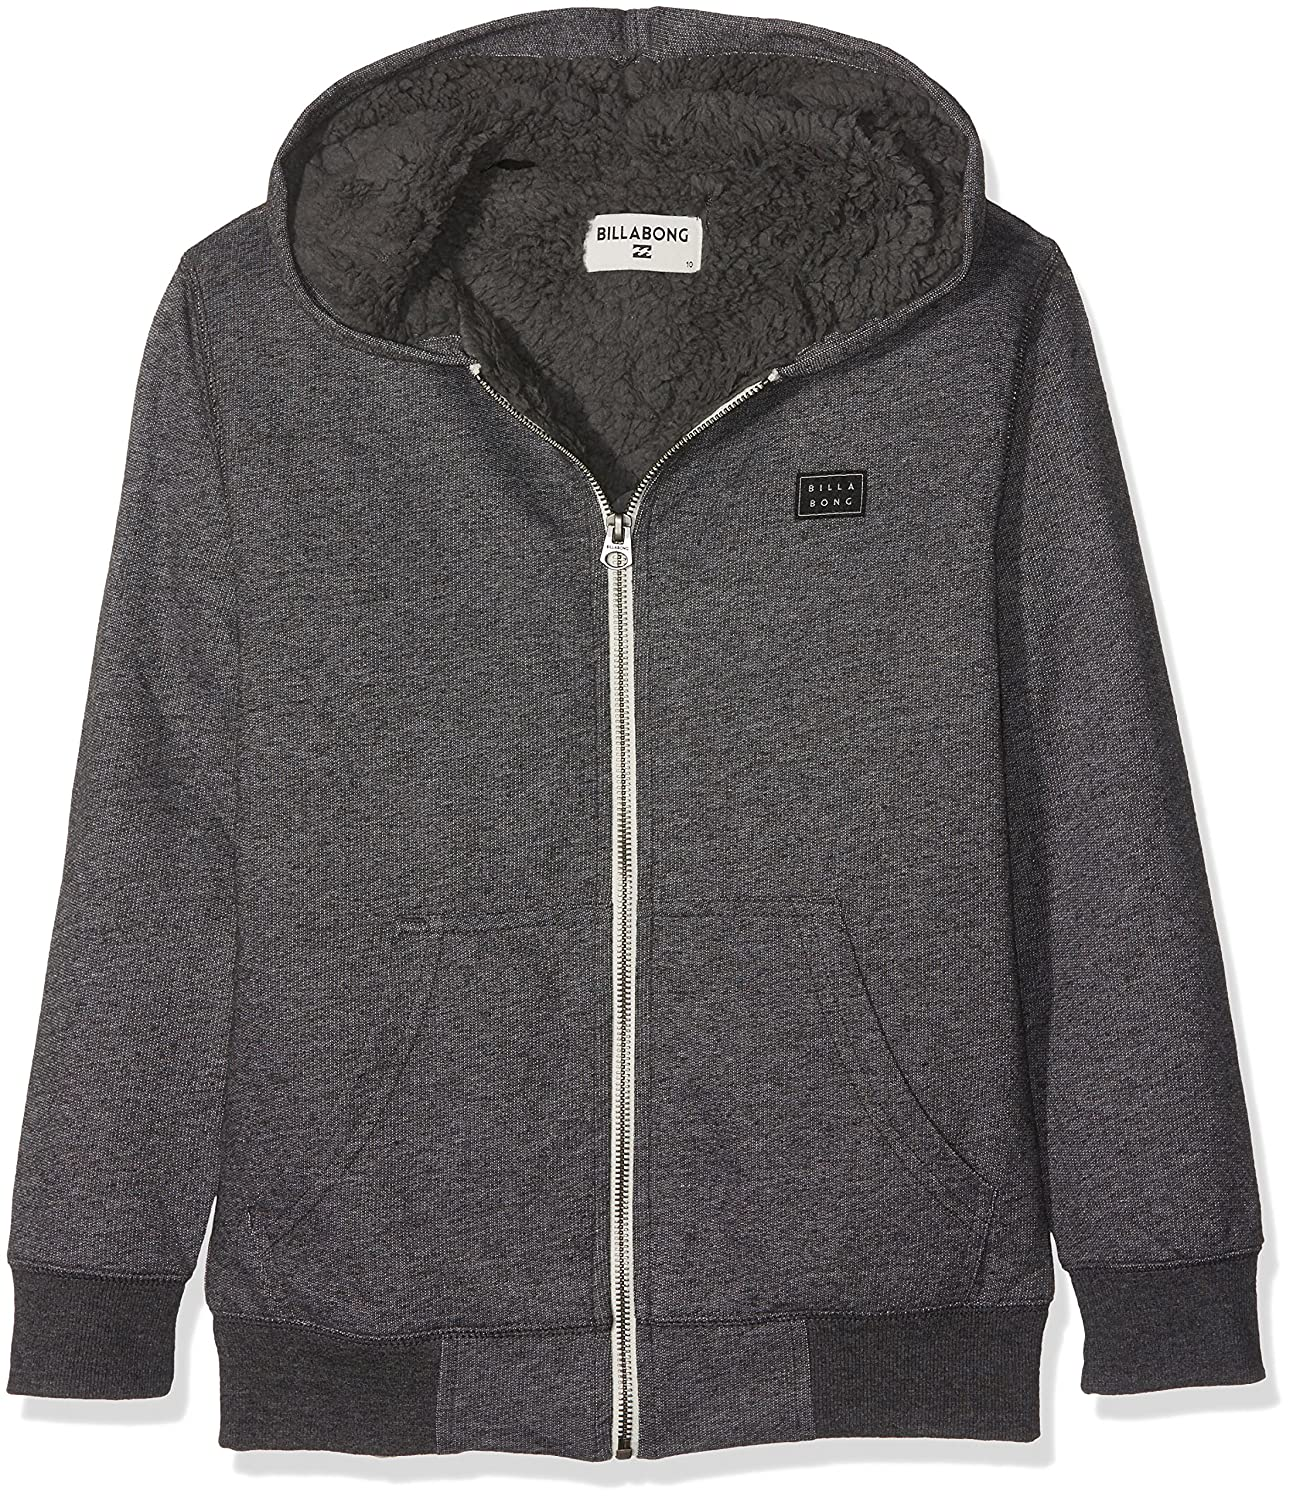 Billabong All Day ZH Sherpa Kapuzenjacke Jungen KKDNL|#BILLABONG F2FL11